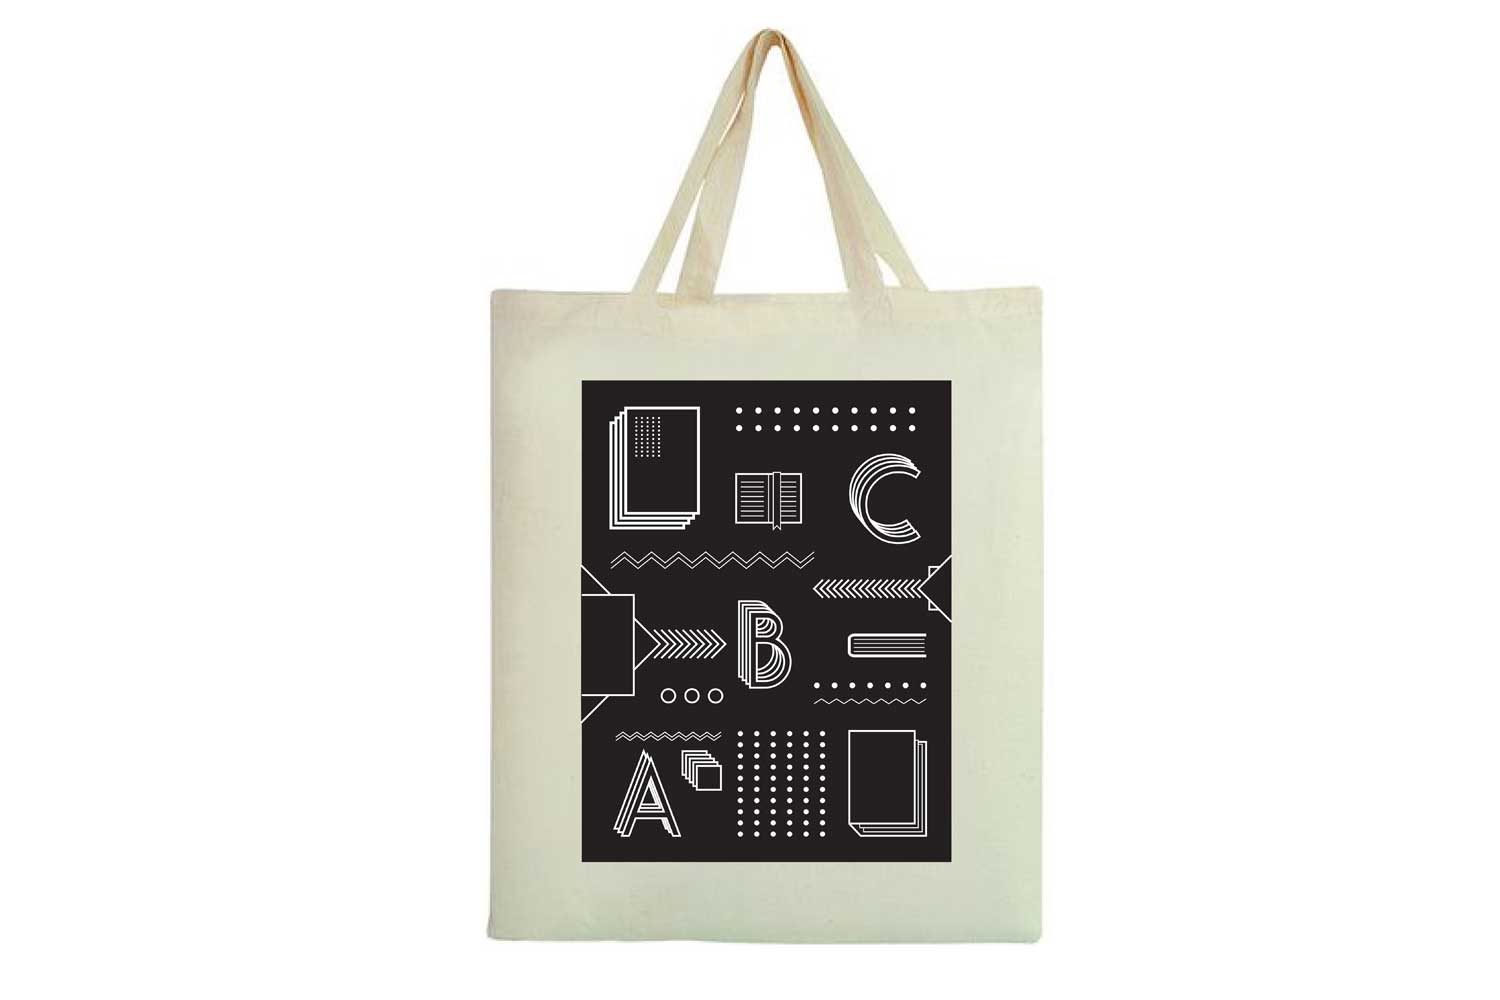 Library hand bag - Graphic Design